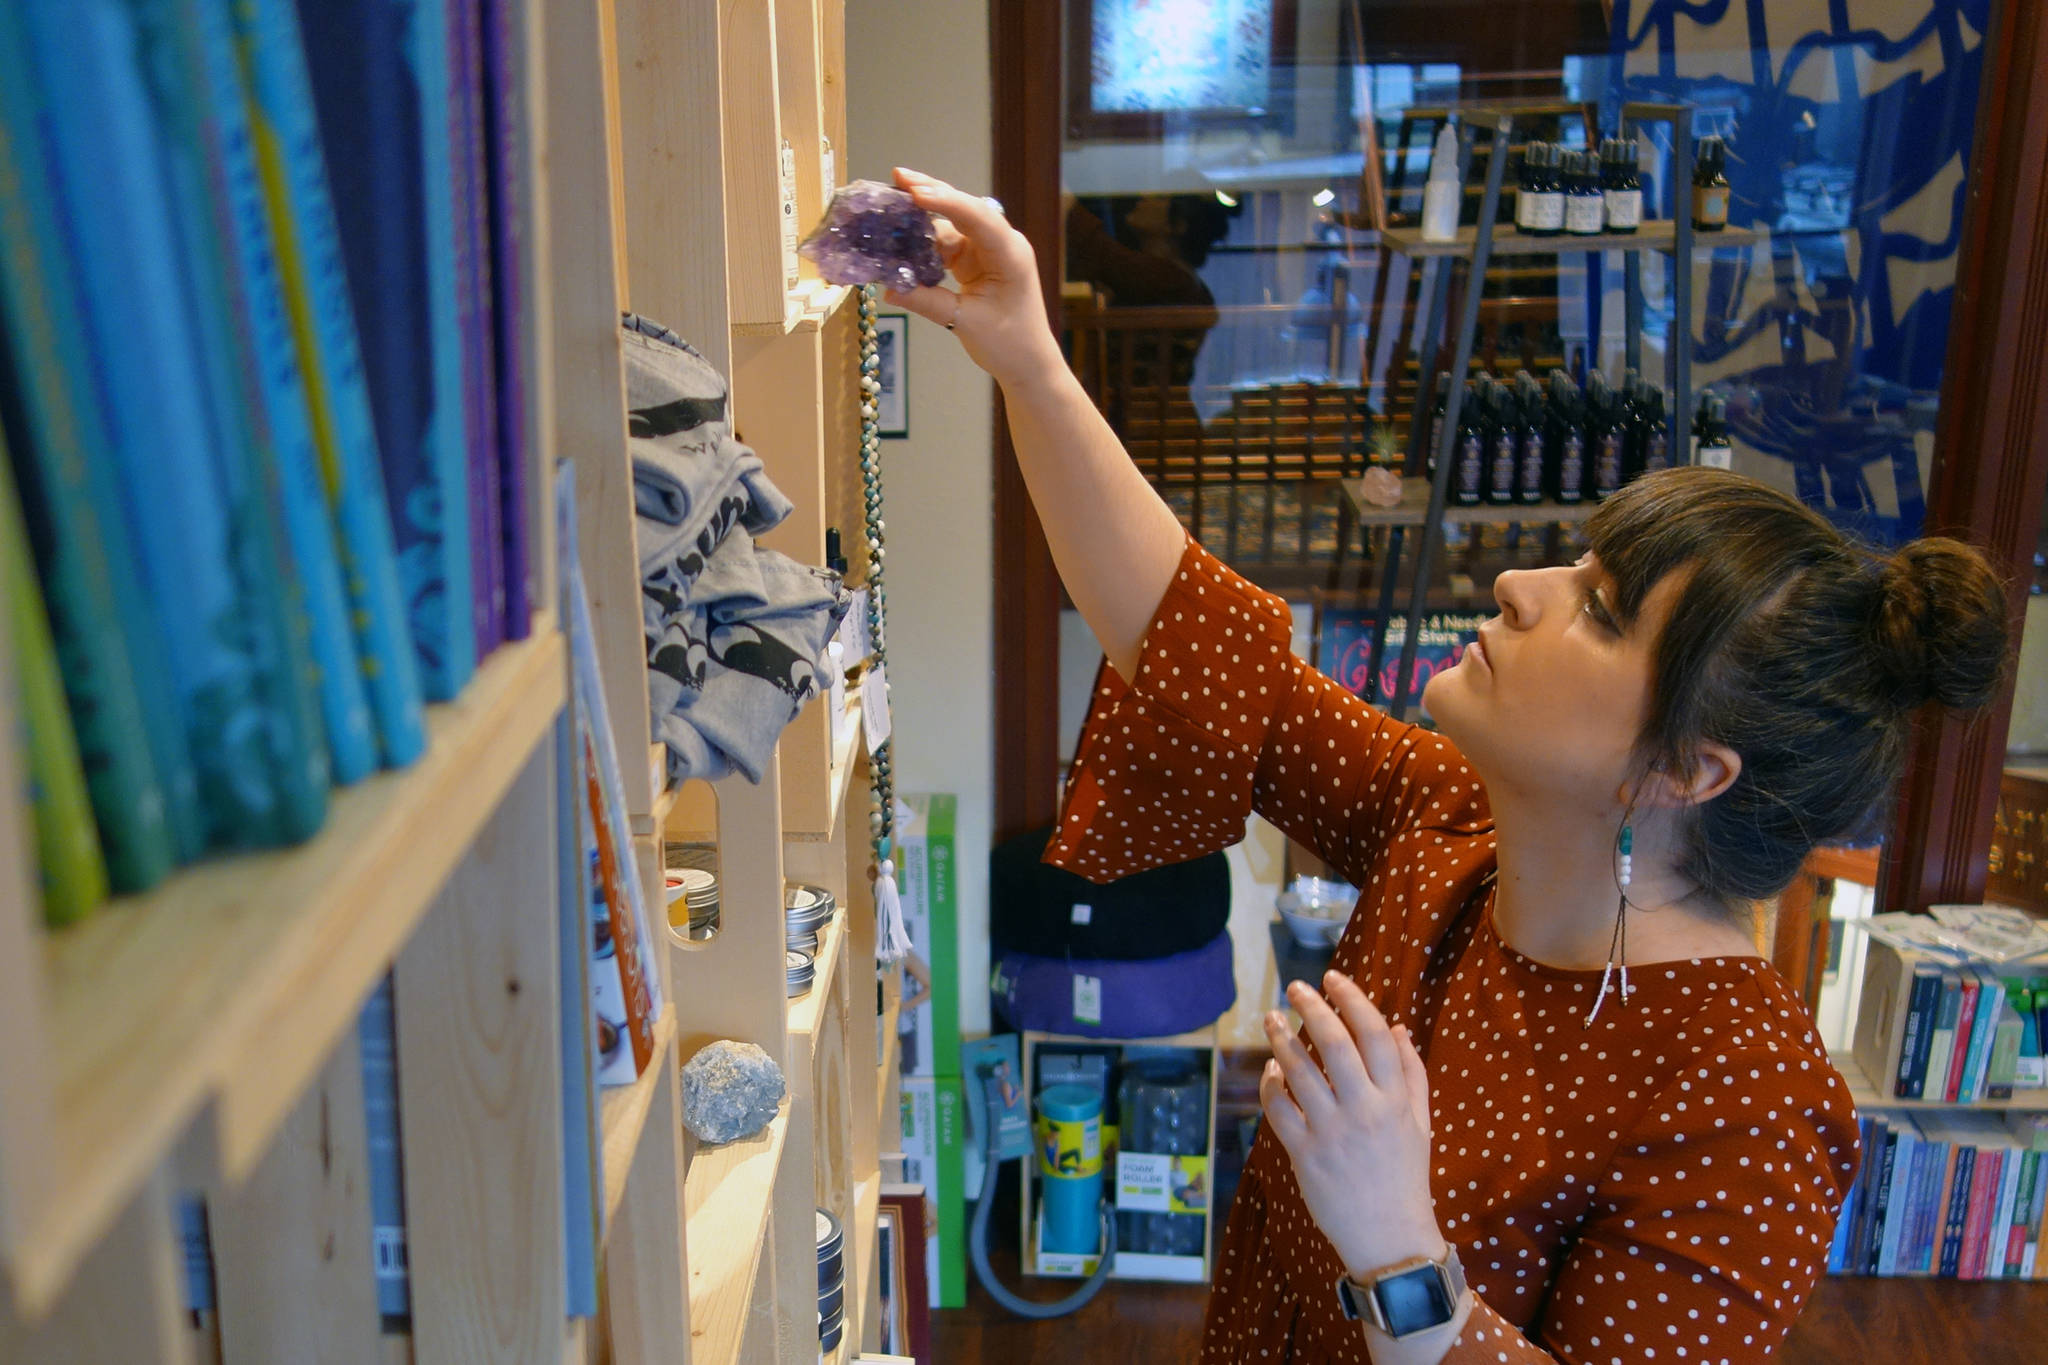 Brianna Ackley, owner of Wolfsong Wellness Boutique puts a crystal away on Thursday, Oct. 17, 2019. (Ben Hohenstatt | Juneau Empire)(Ben Hohenstatt | Juneau Empire)